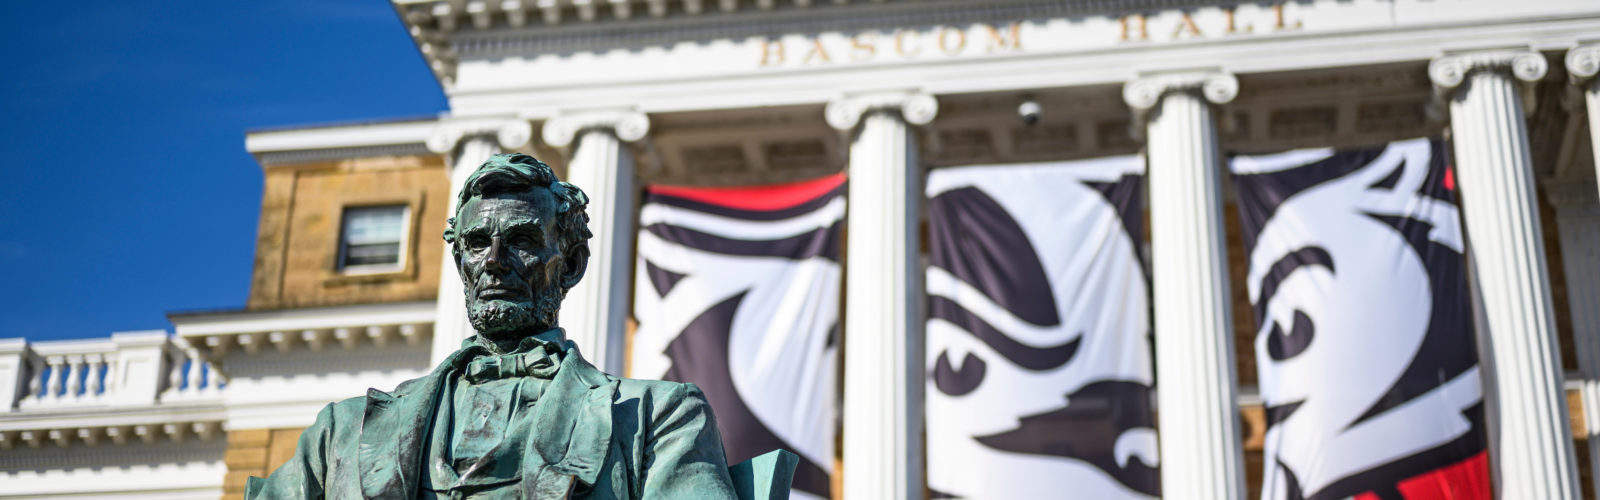 The Abraham Lincoln statue is picture in front of Bascom Hall at the University of Wisconsin-Madison on Oct. 18, 2019. Hanging in between the building's columns are banners depicting a graphic of UW-Madison mascot Bucky Badger